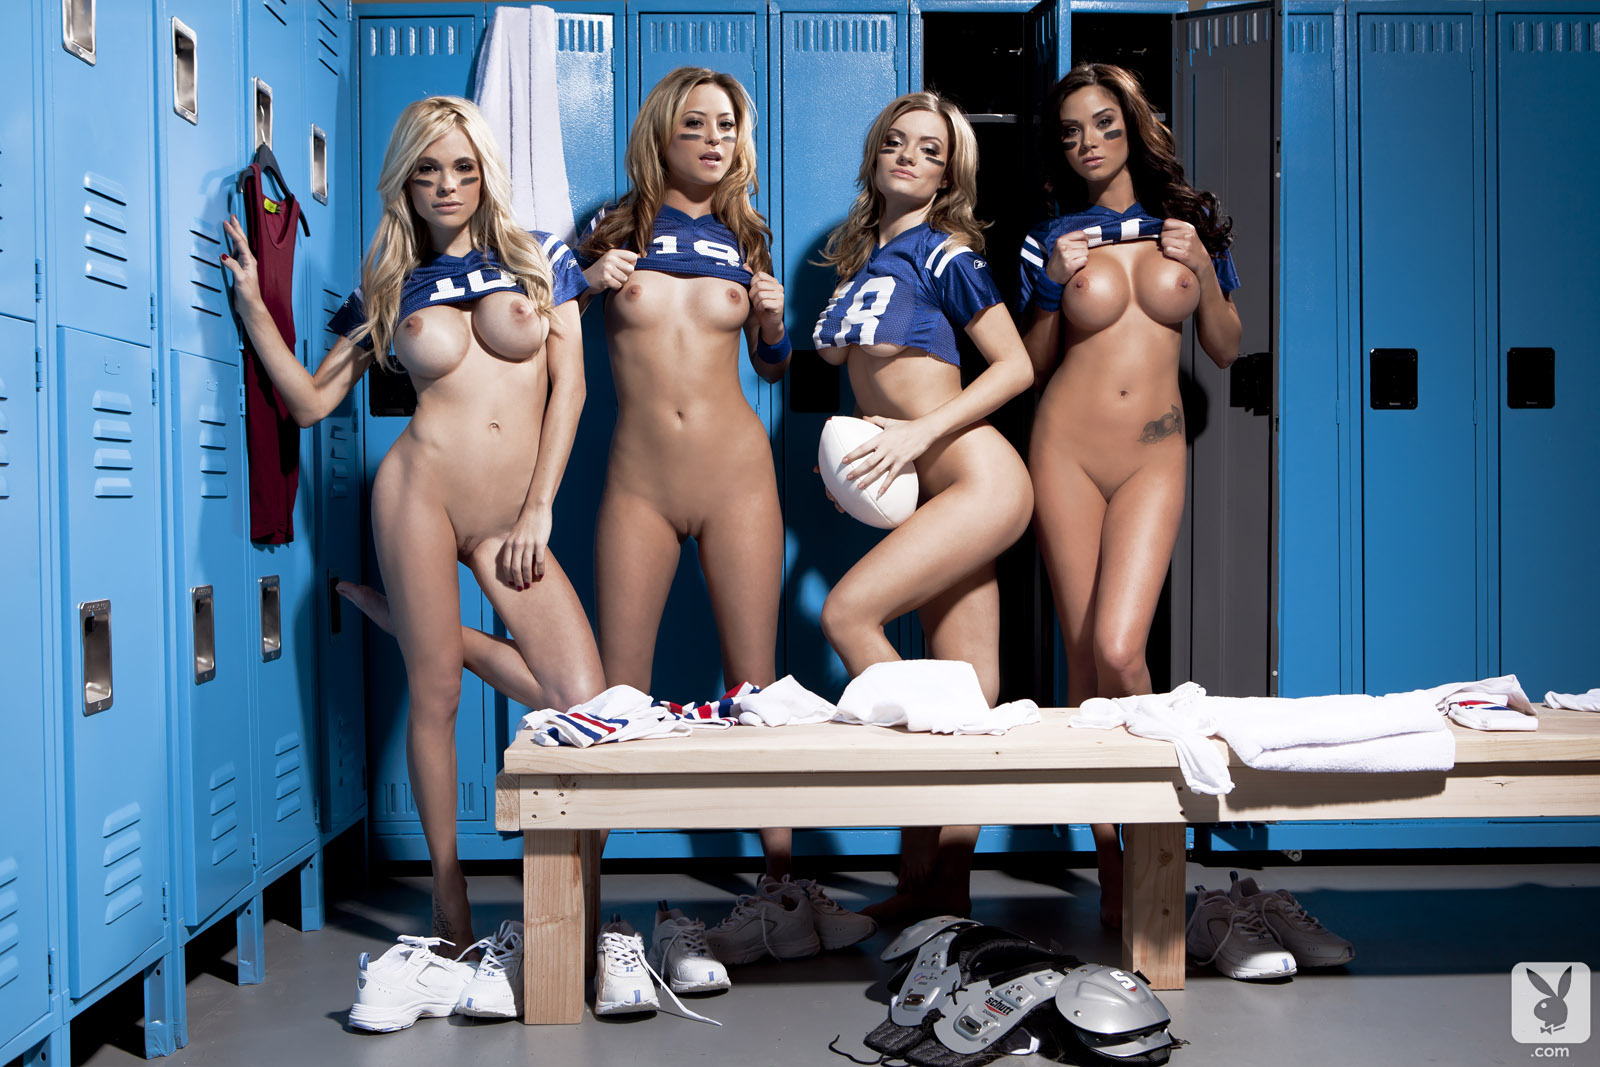 locker-room-girls-sex-young-girls-with